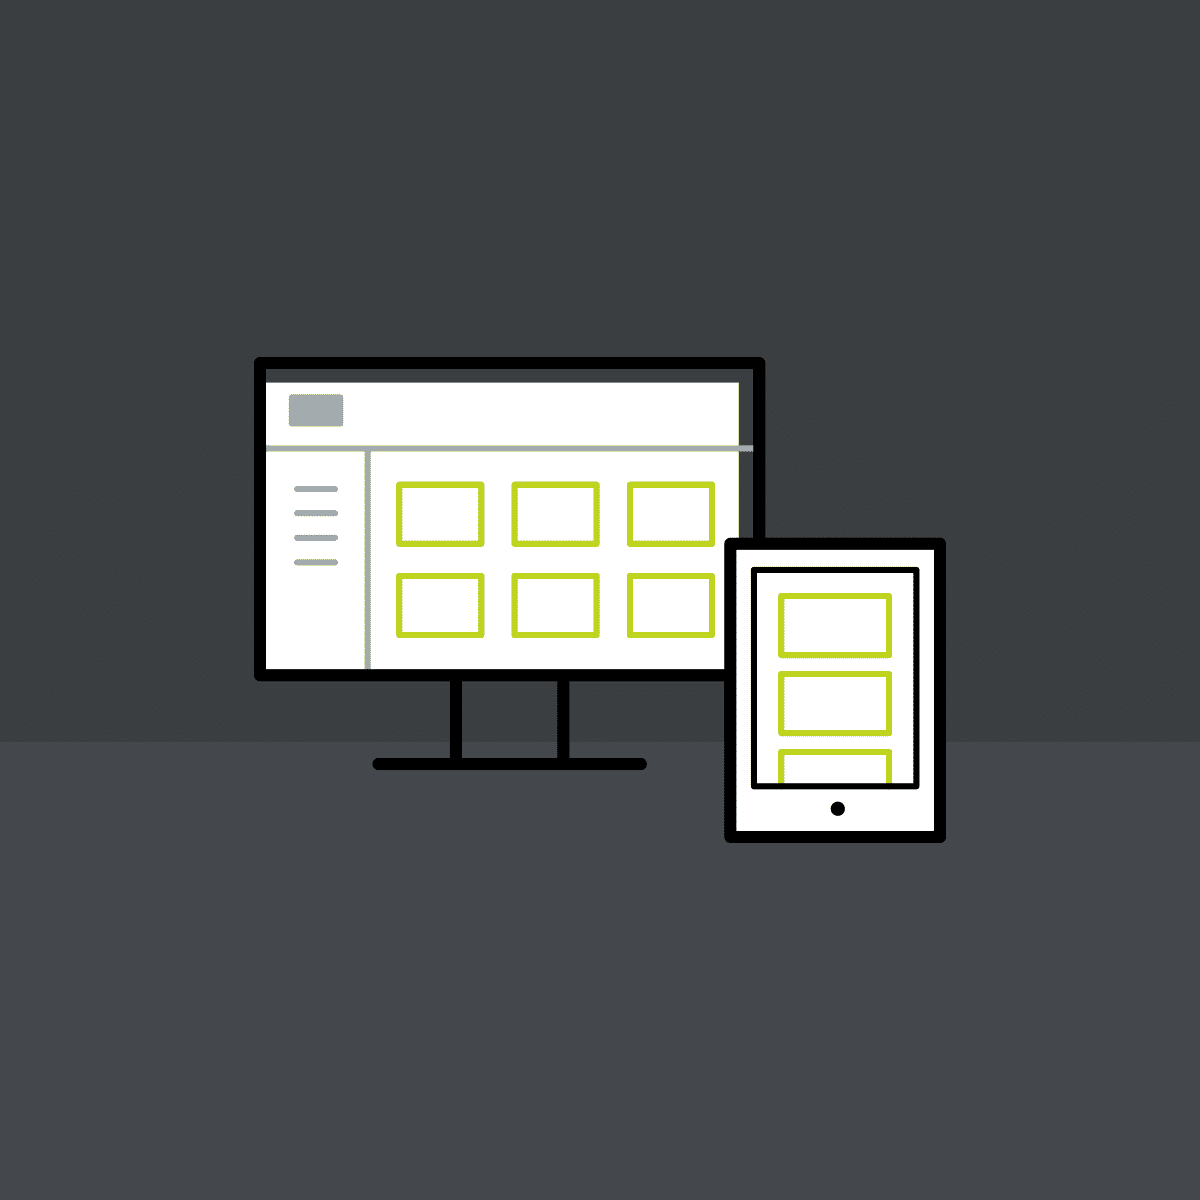 responsive layouts for desktop and mobile